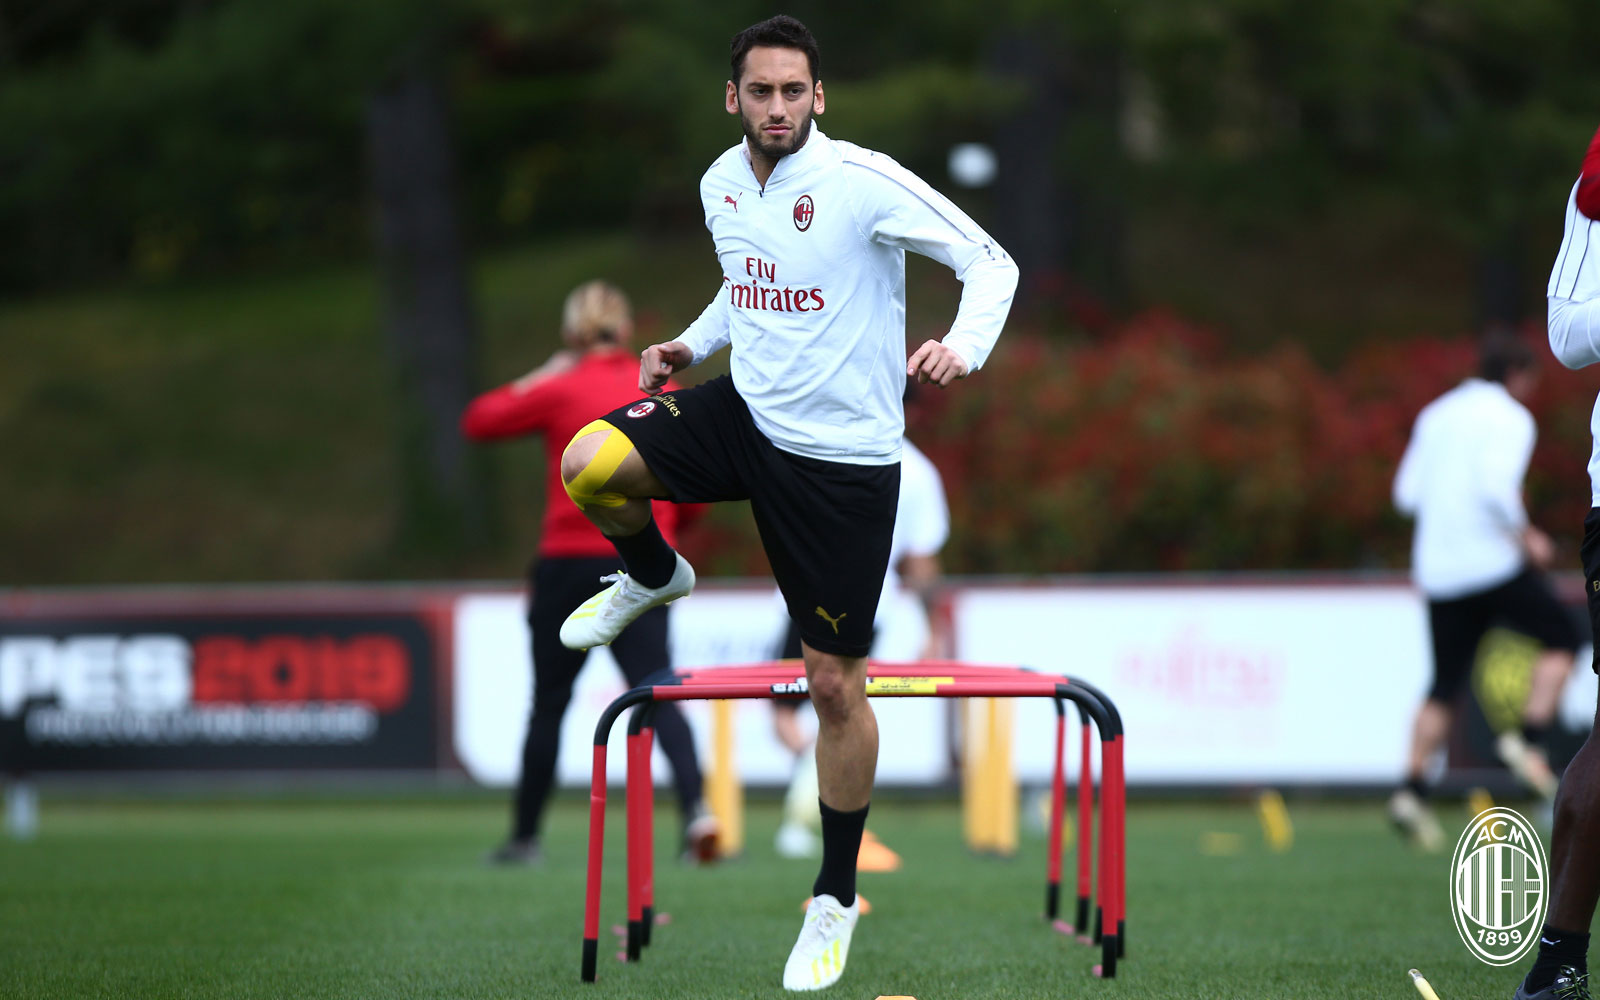 Hakan Çalhanoğlu during training at Milanello. (@acmilan.com)